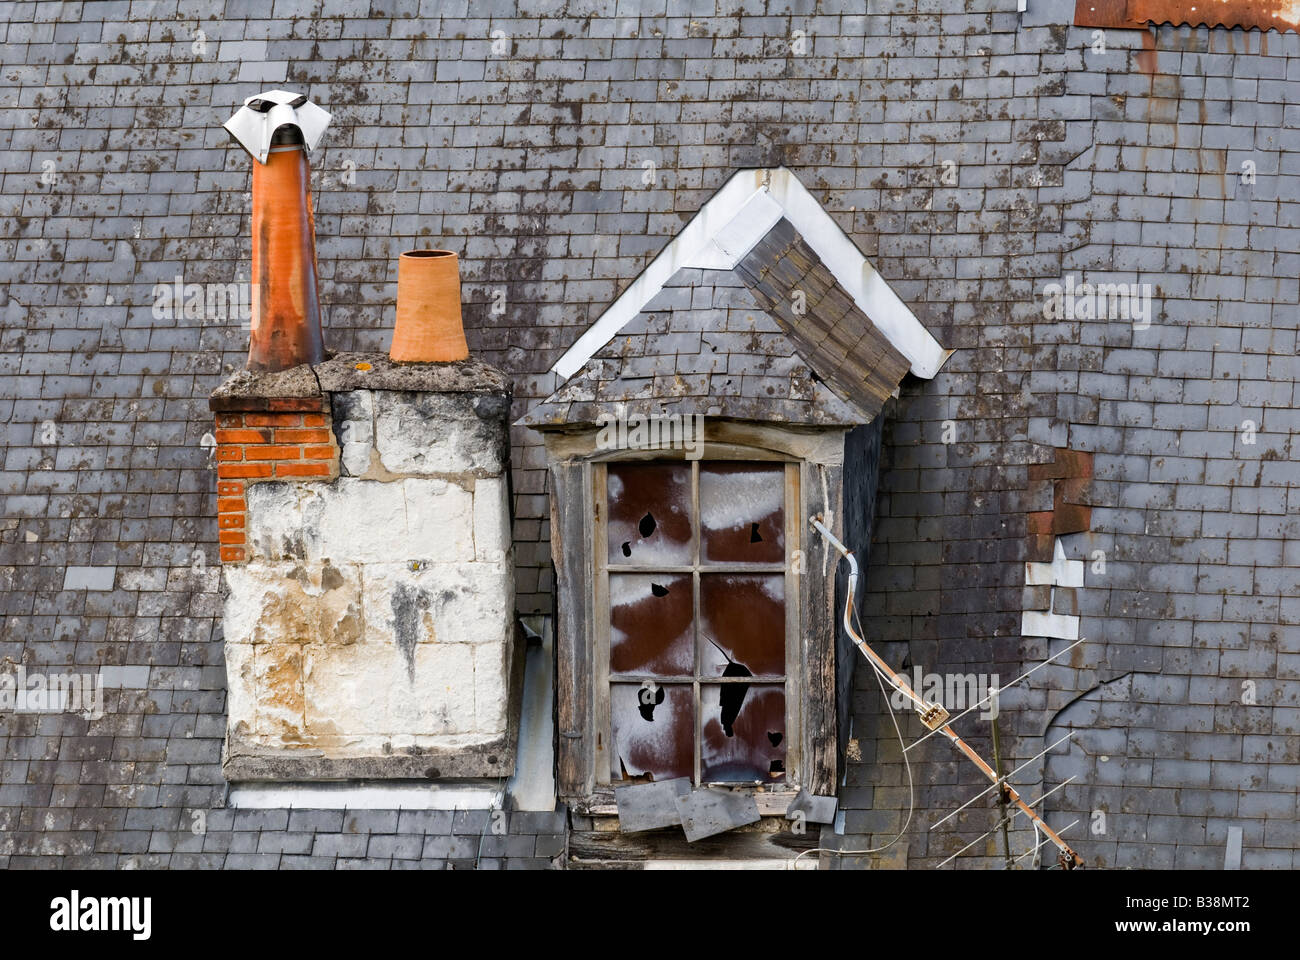 Old chimney stack and dormer window - Loches, France. - Stock Image